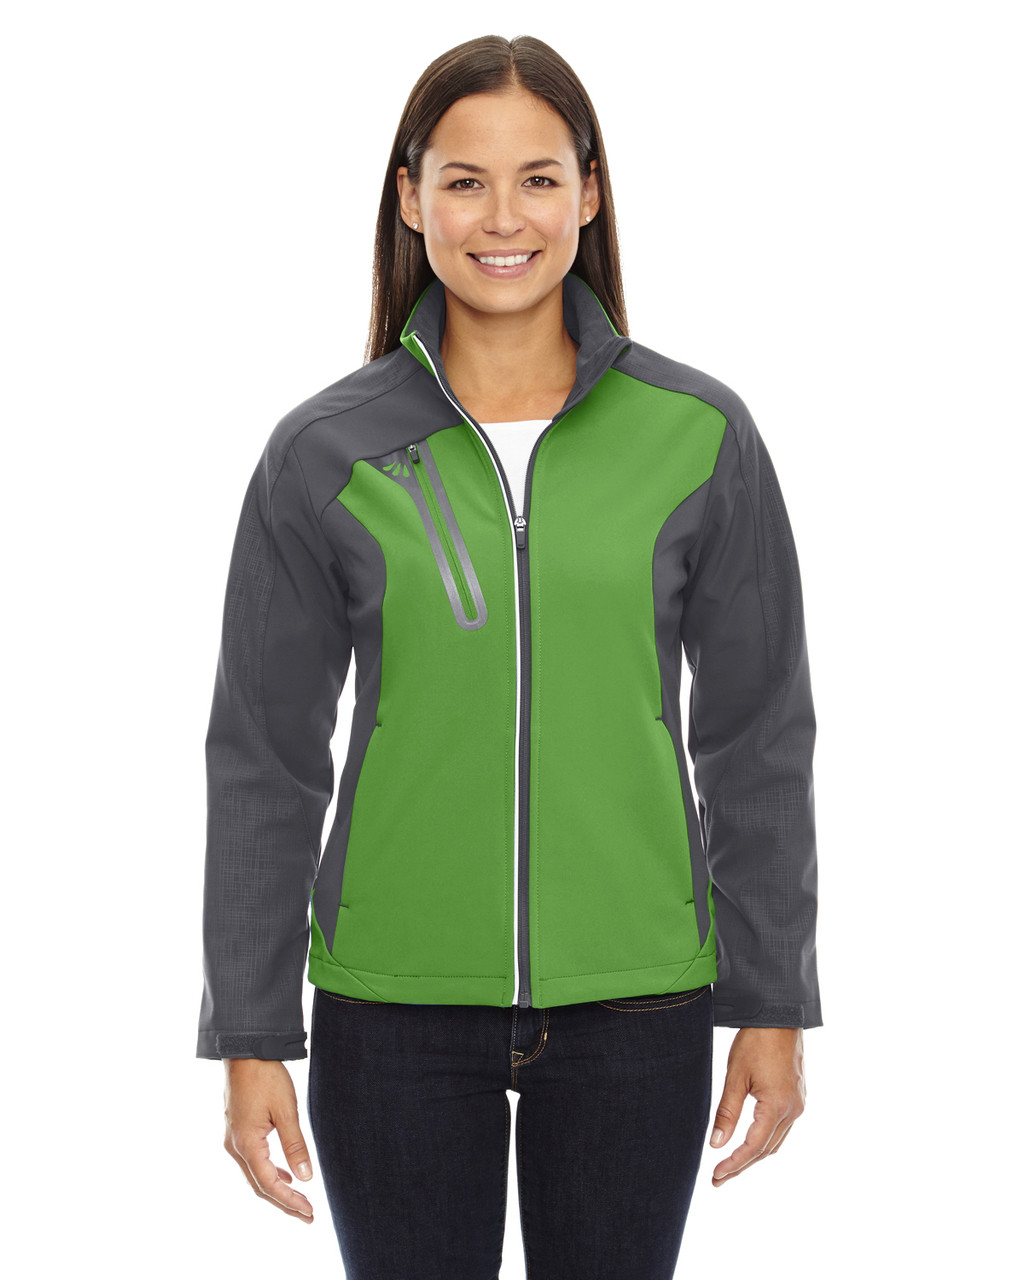 Valley Green - 78176 North End Terrain Colourblock Soft Shell Jacket with Embossed Print | Blankclothing.ca